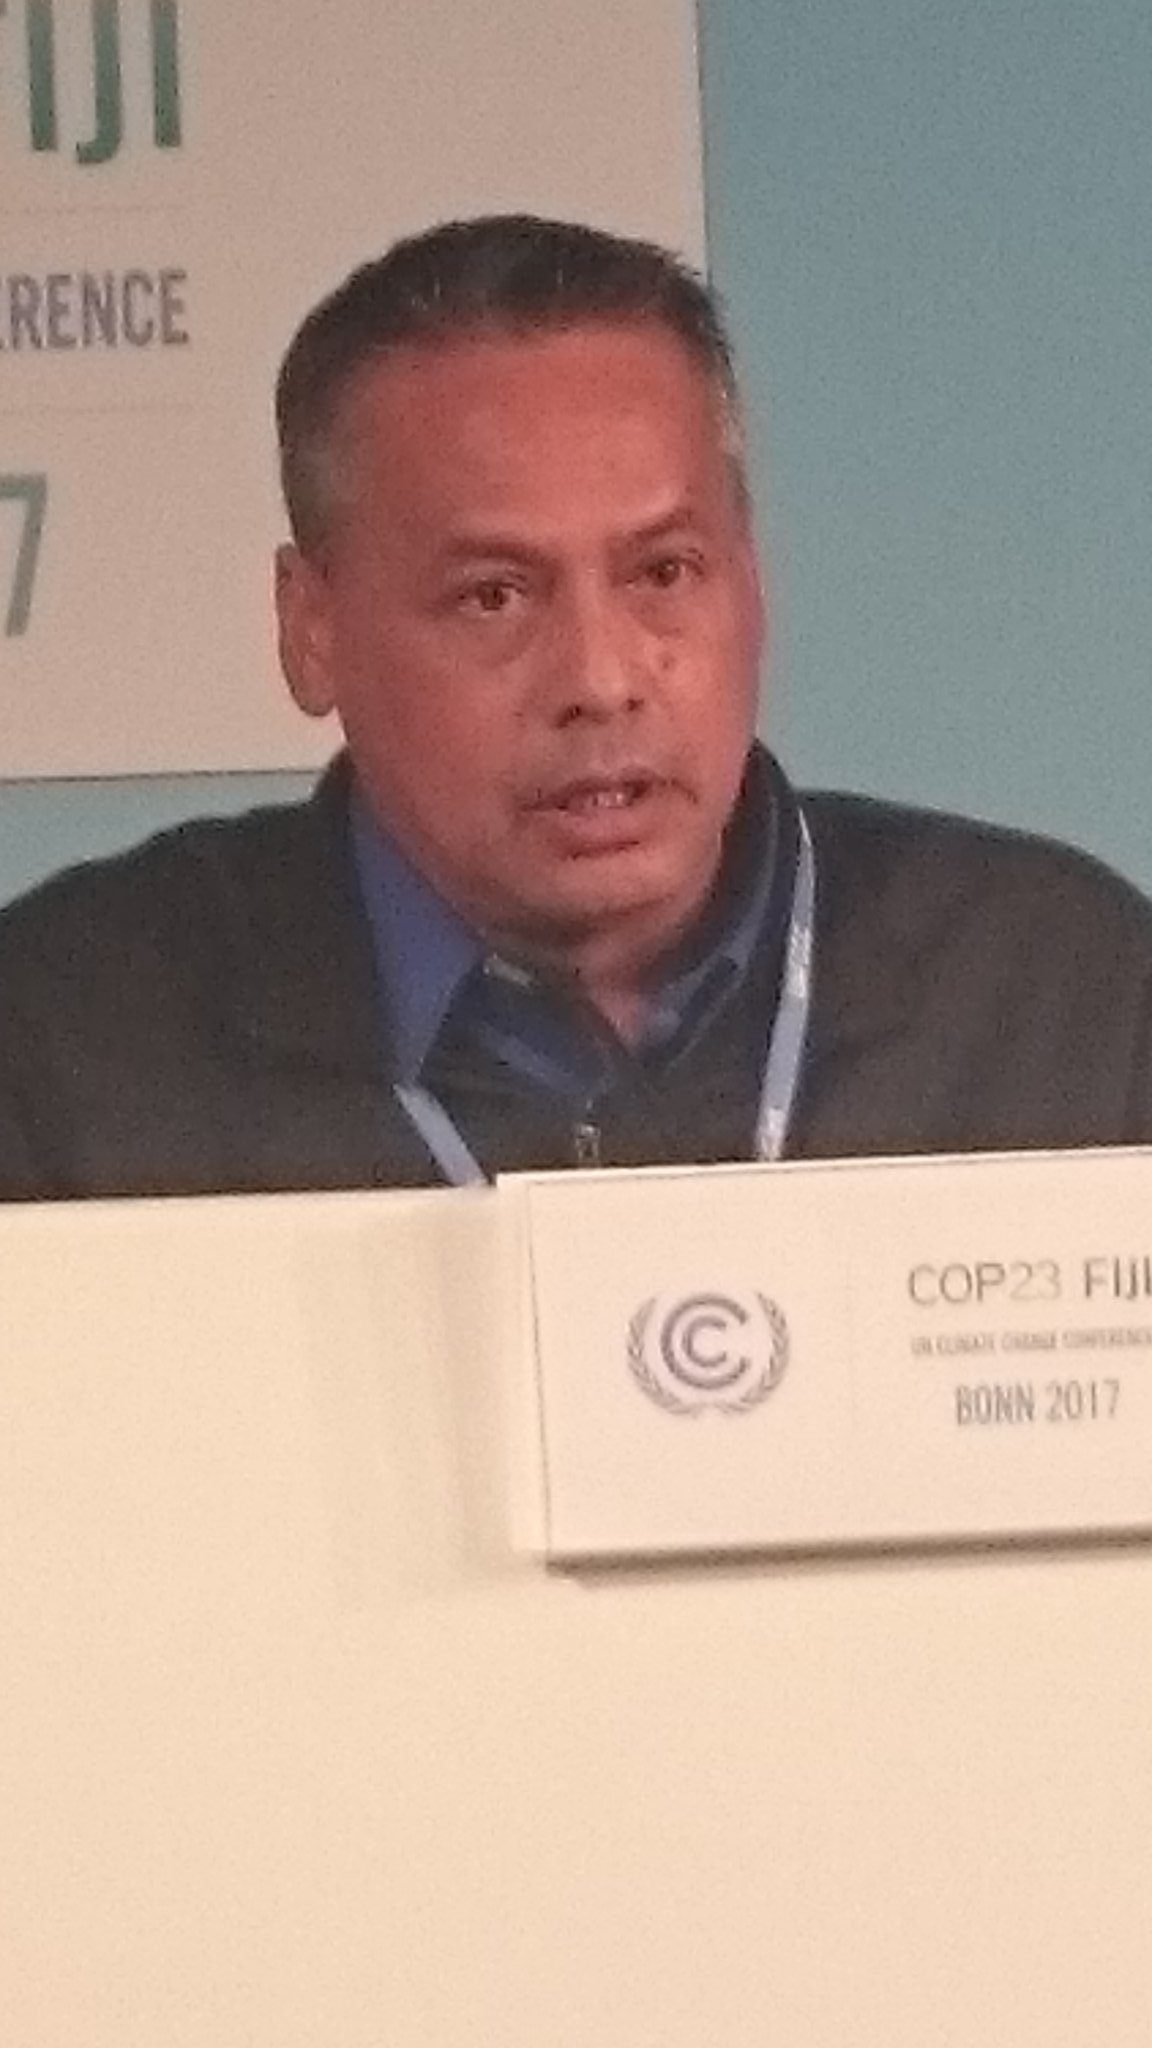 William Kostka, dir. of Micronesia Conservation Trust, the small grant fund with an accreditation at the #GreenClimateFund, says that 'it's only easy to spend money if you don't care how it's spent and if it's effective'. This small grant fund knows very well where money matters! https://t.co/At4PSoeTyo